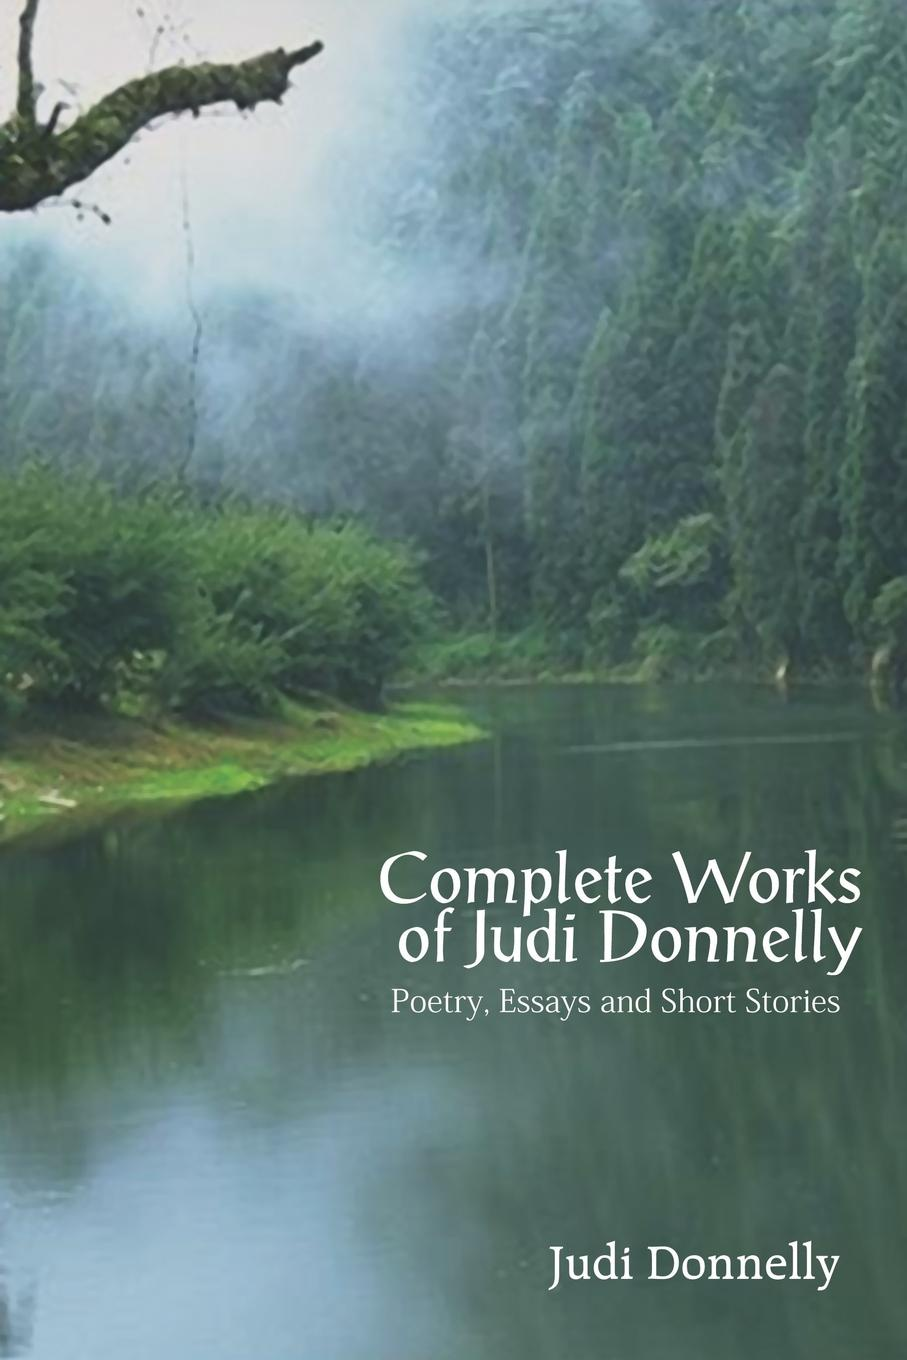 Judi Donnelly Complete Works of Judi Donnelly. Poetry, Essays and Short Stories j f donnelly james dsw donnelly edgar w jenkins science education policy professionalism and change